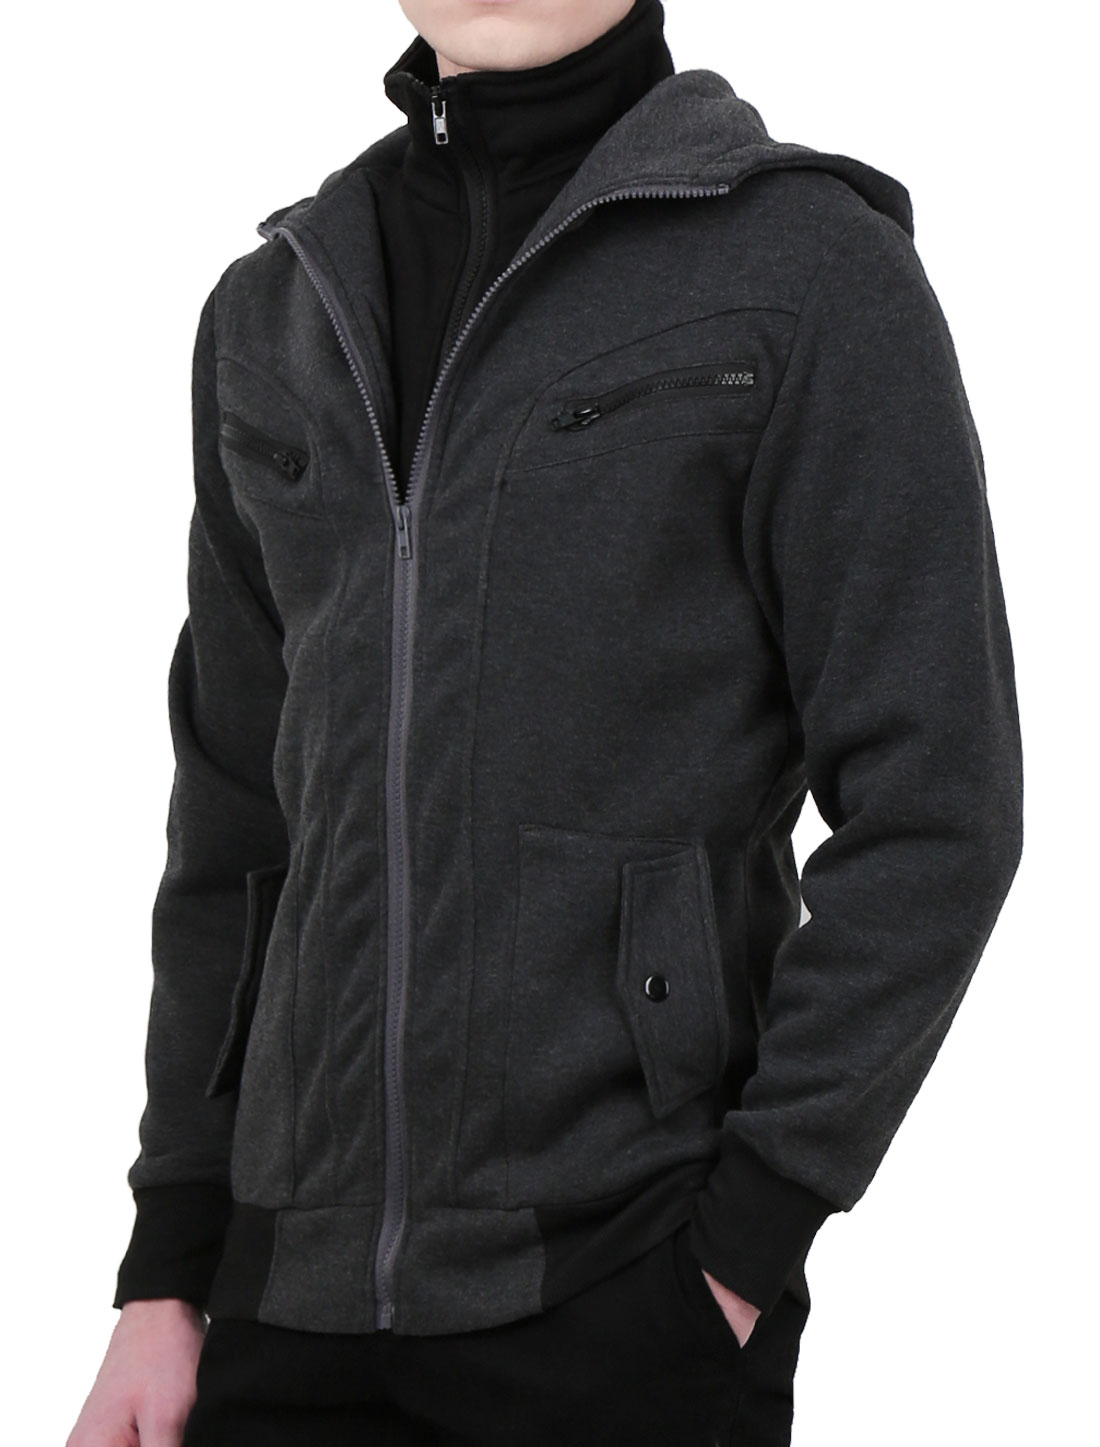 Mens Dark Gray Convertible Collar Autumn Lining Hooded Coat S